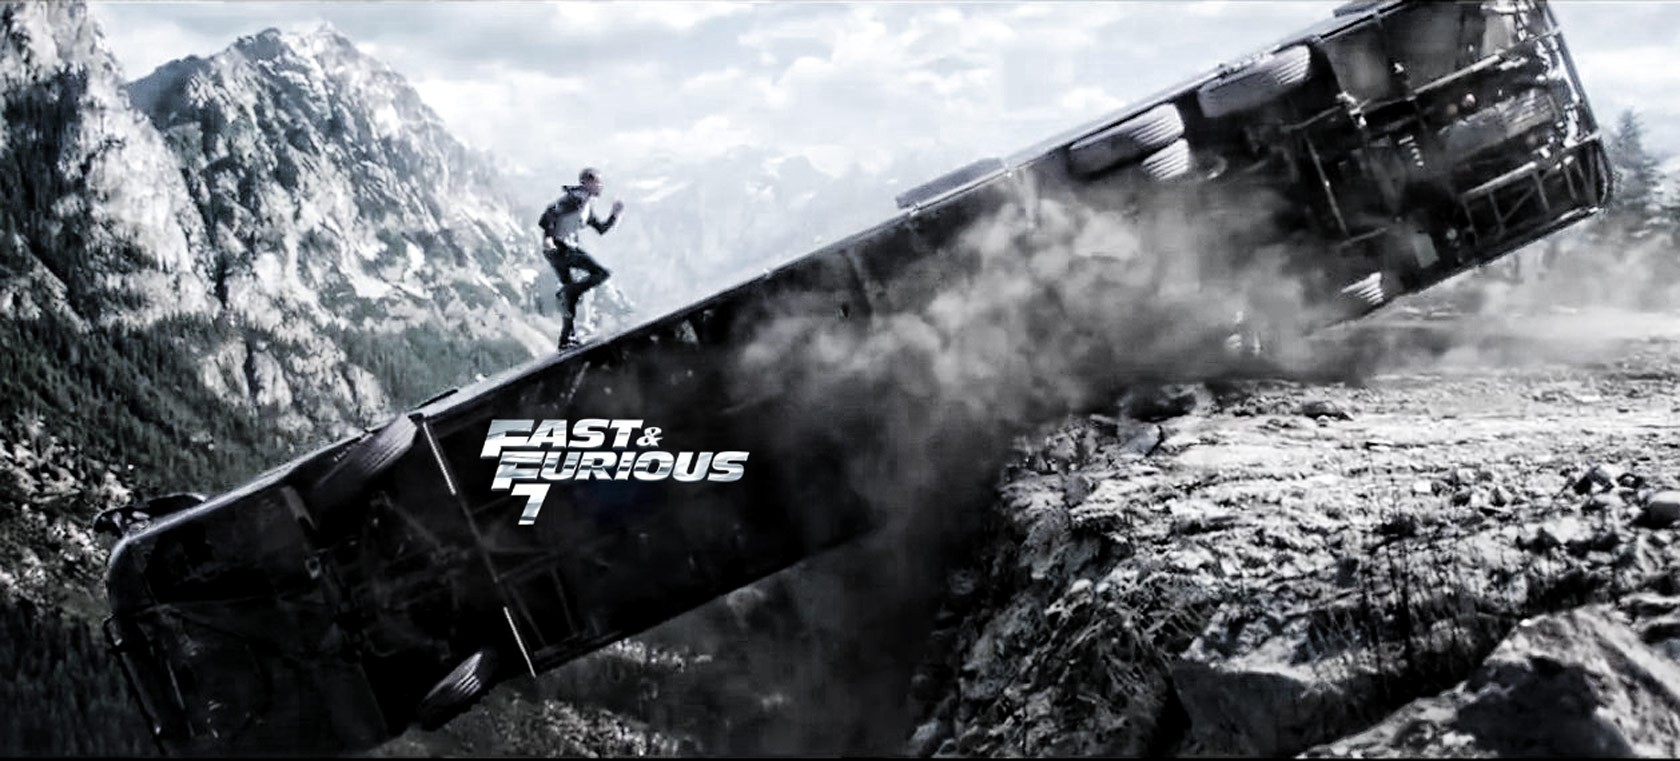 48+] Free Fast and Furious Wallpapers on WallpaperSafari